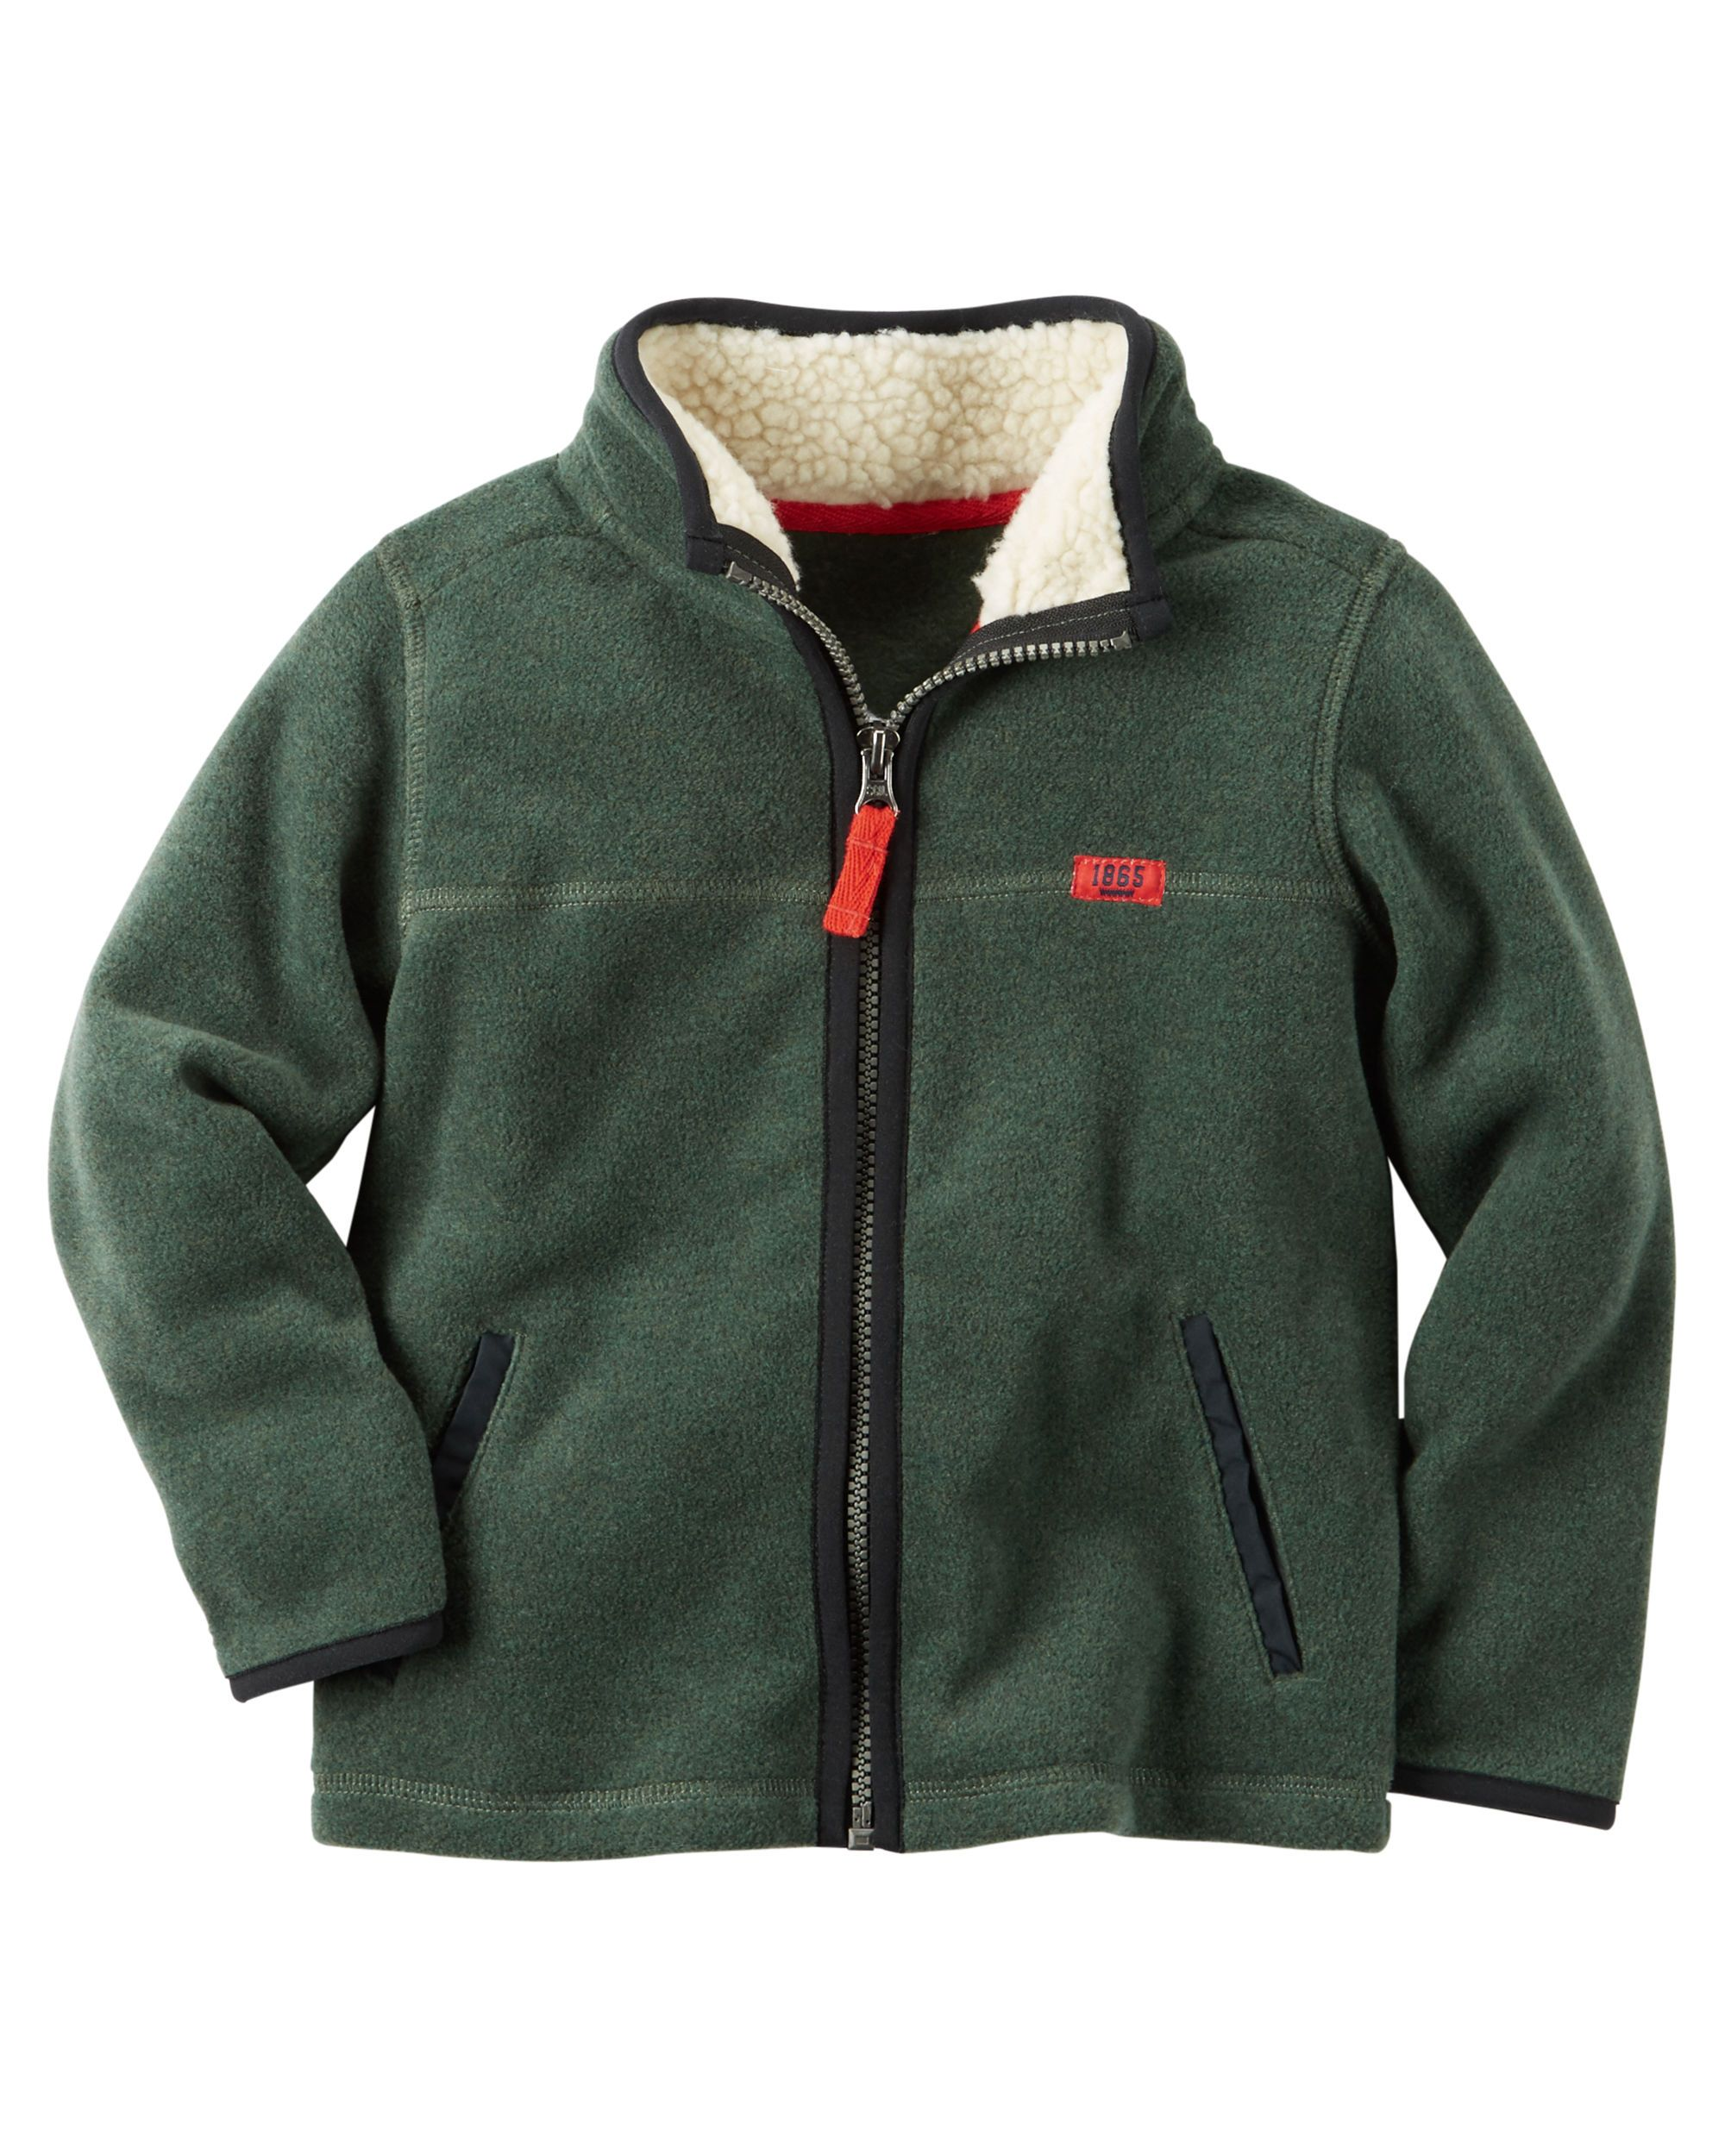 16955224df96 Toddler Boy Fleece Zip-Up Jacket